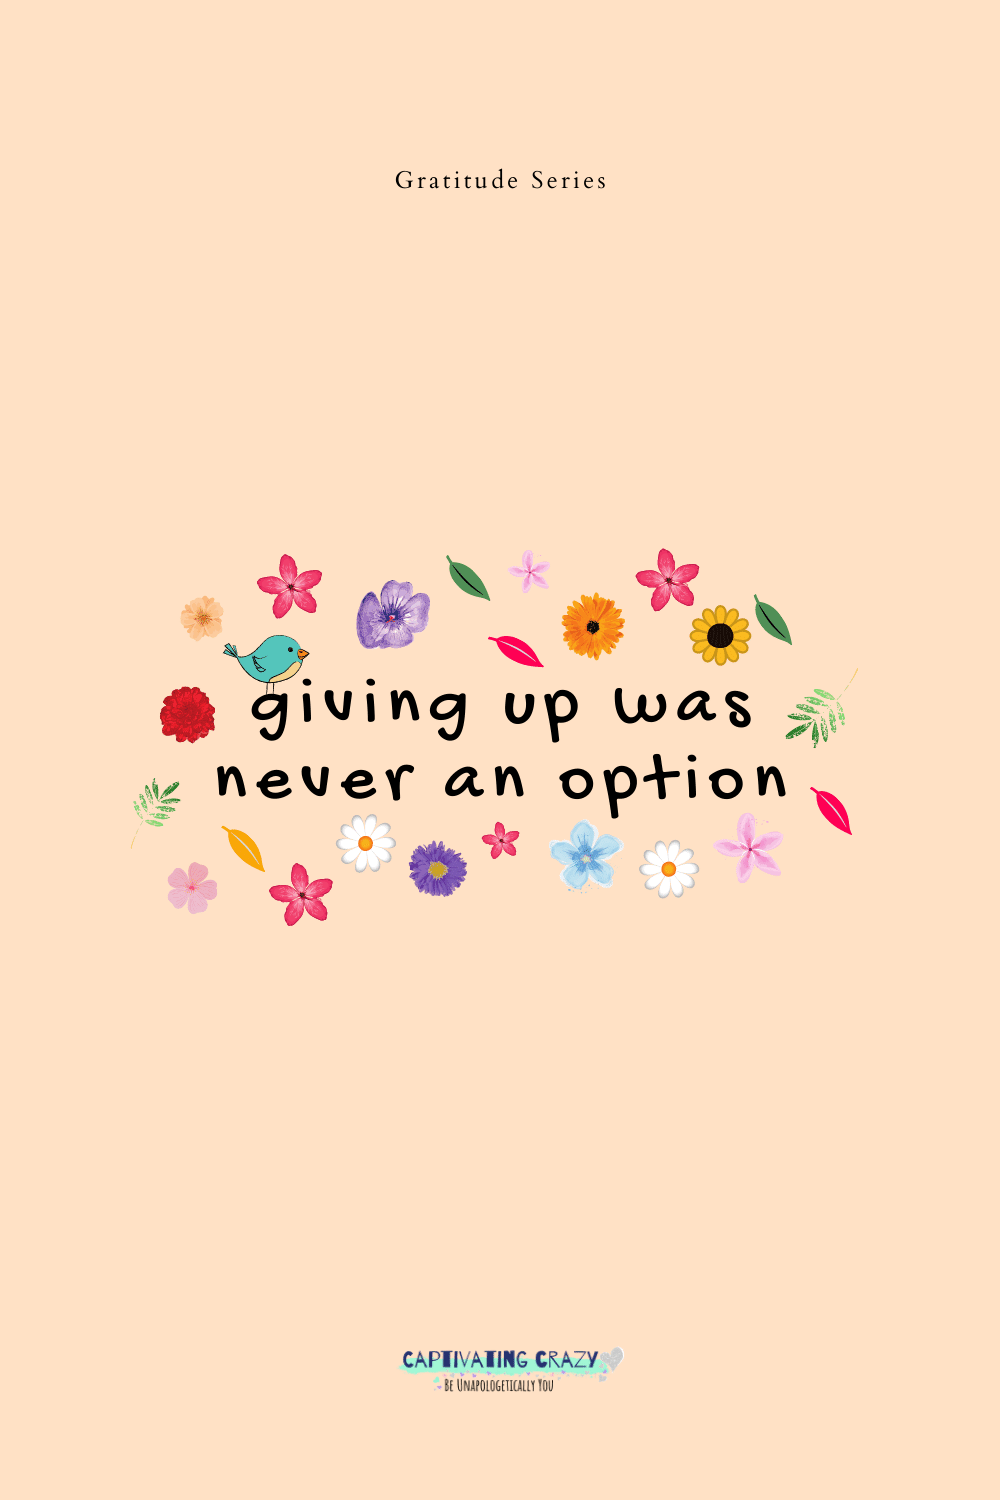 quote about not giving up